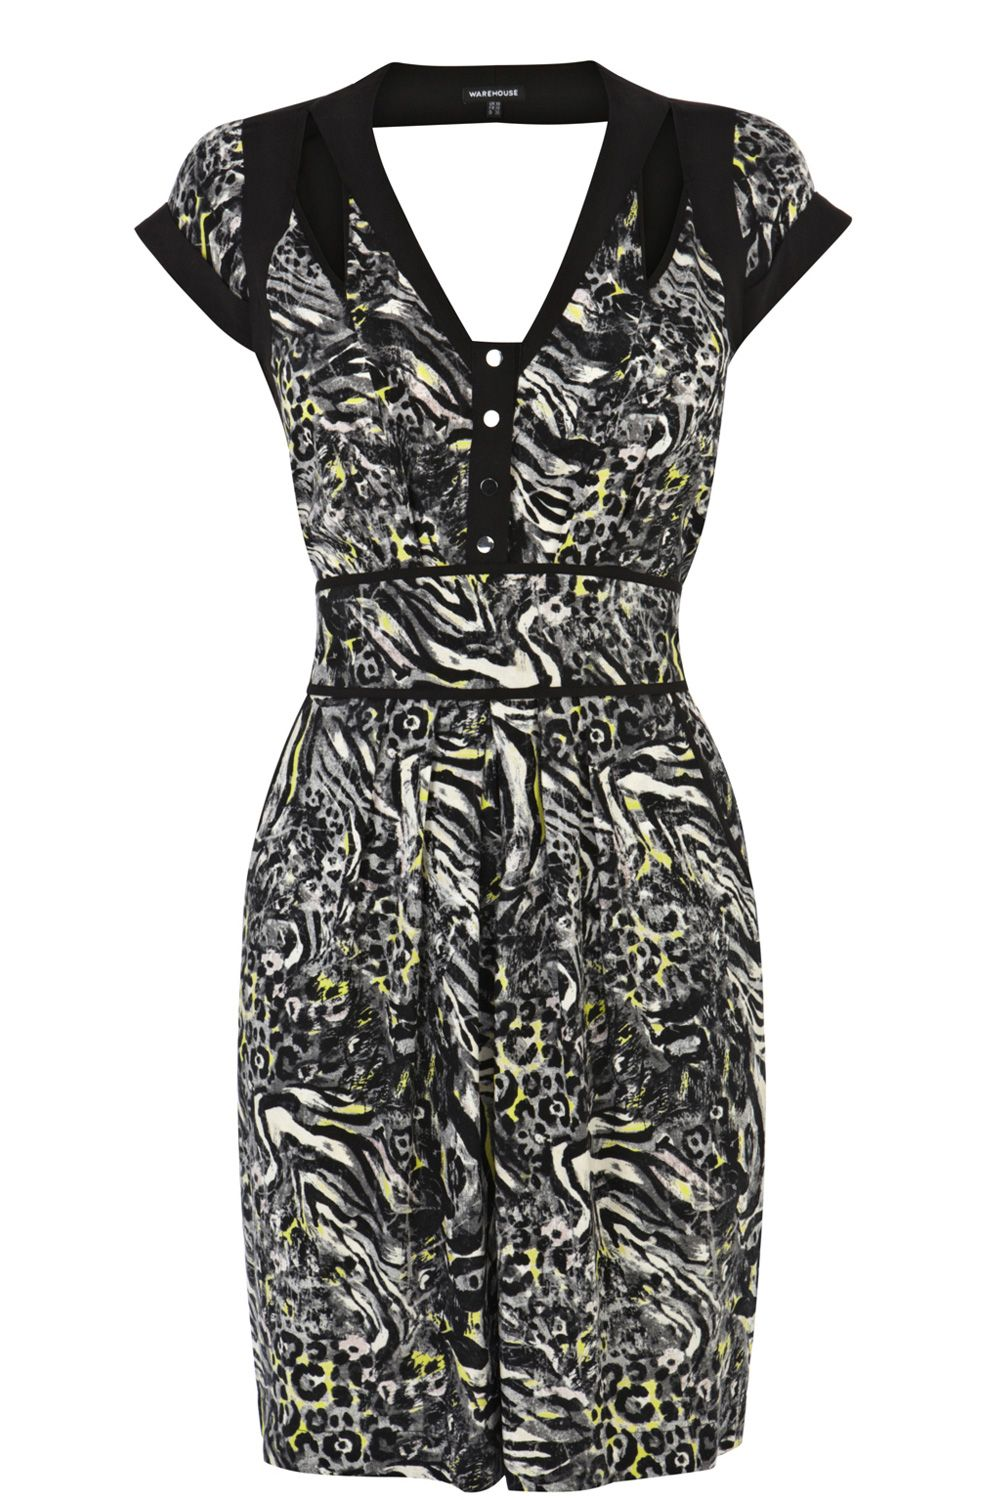 Animal cut out dress